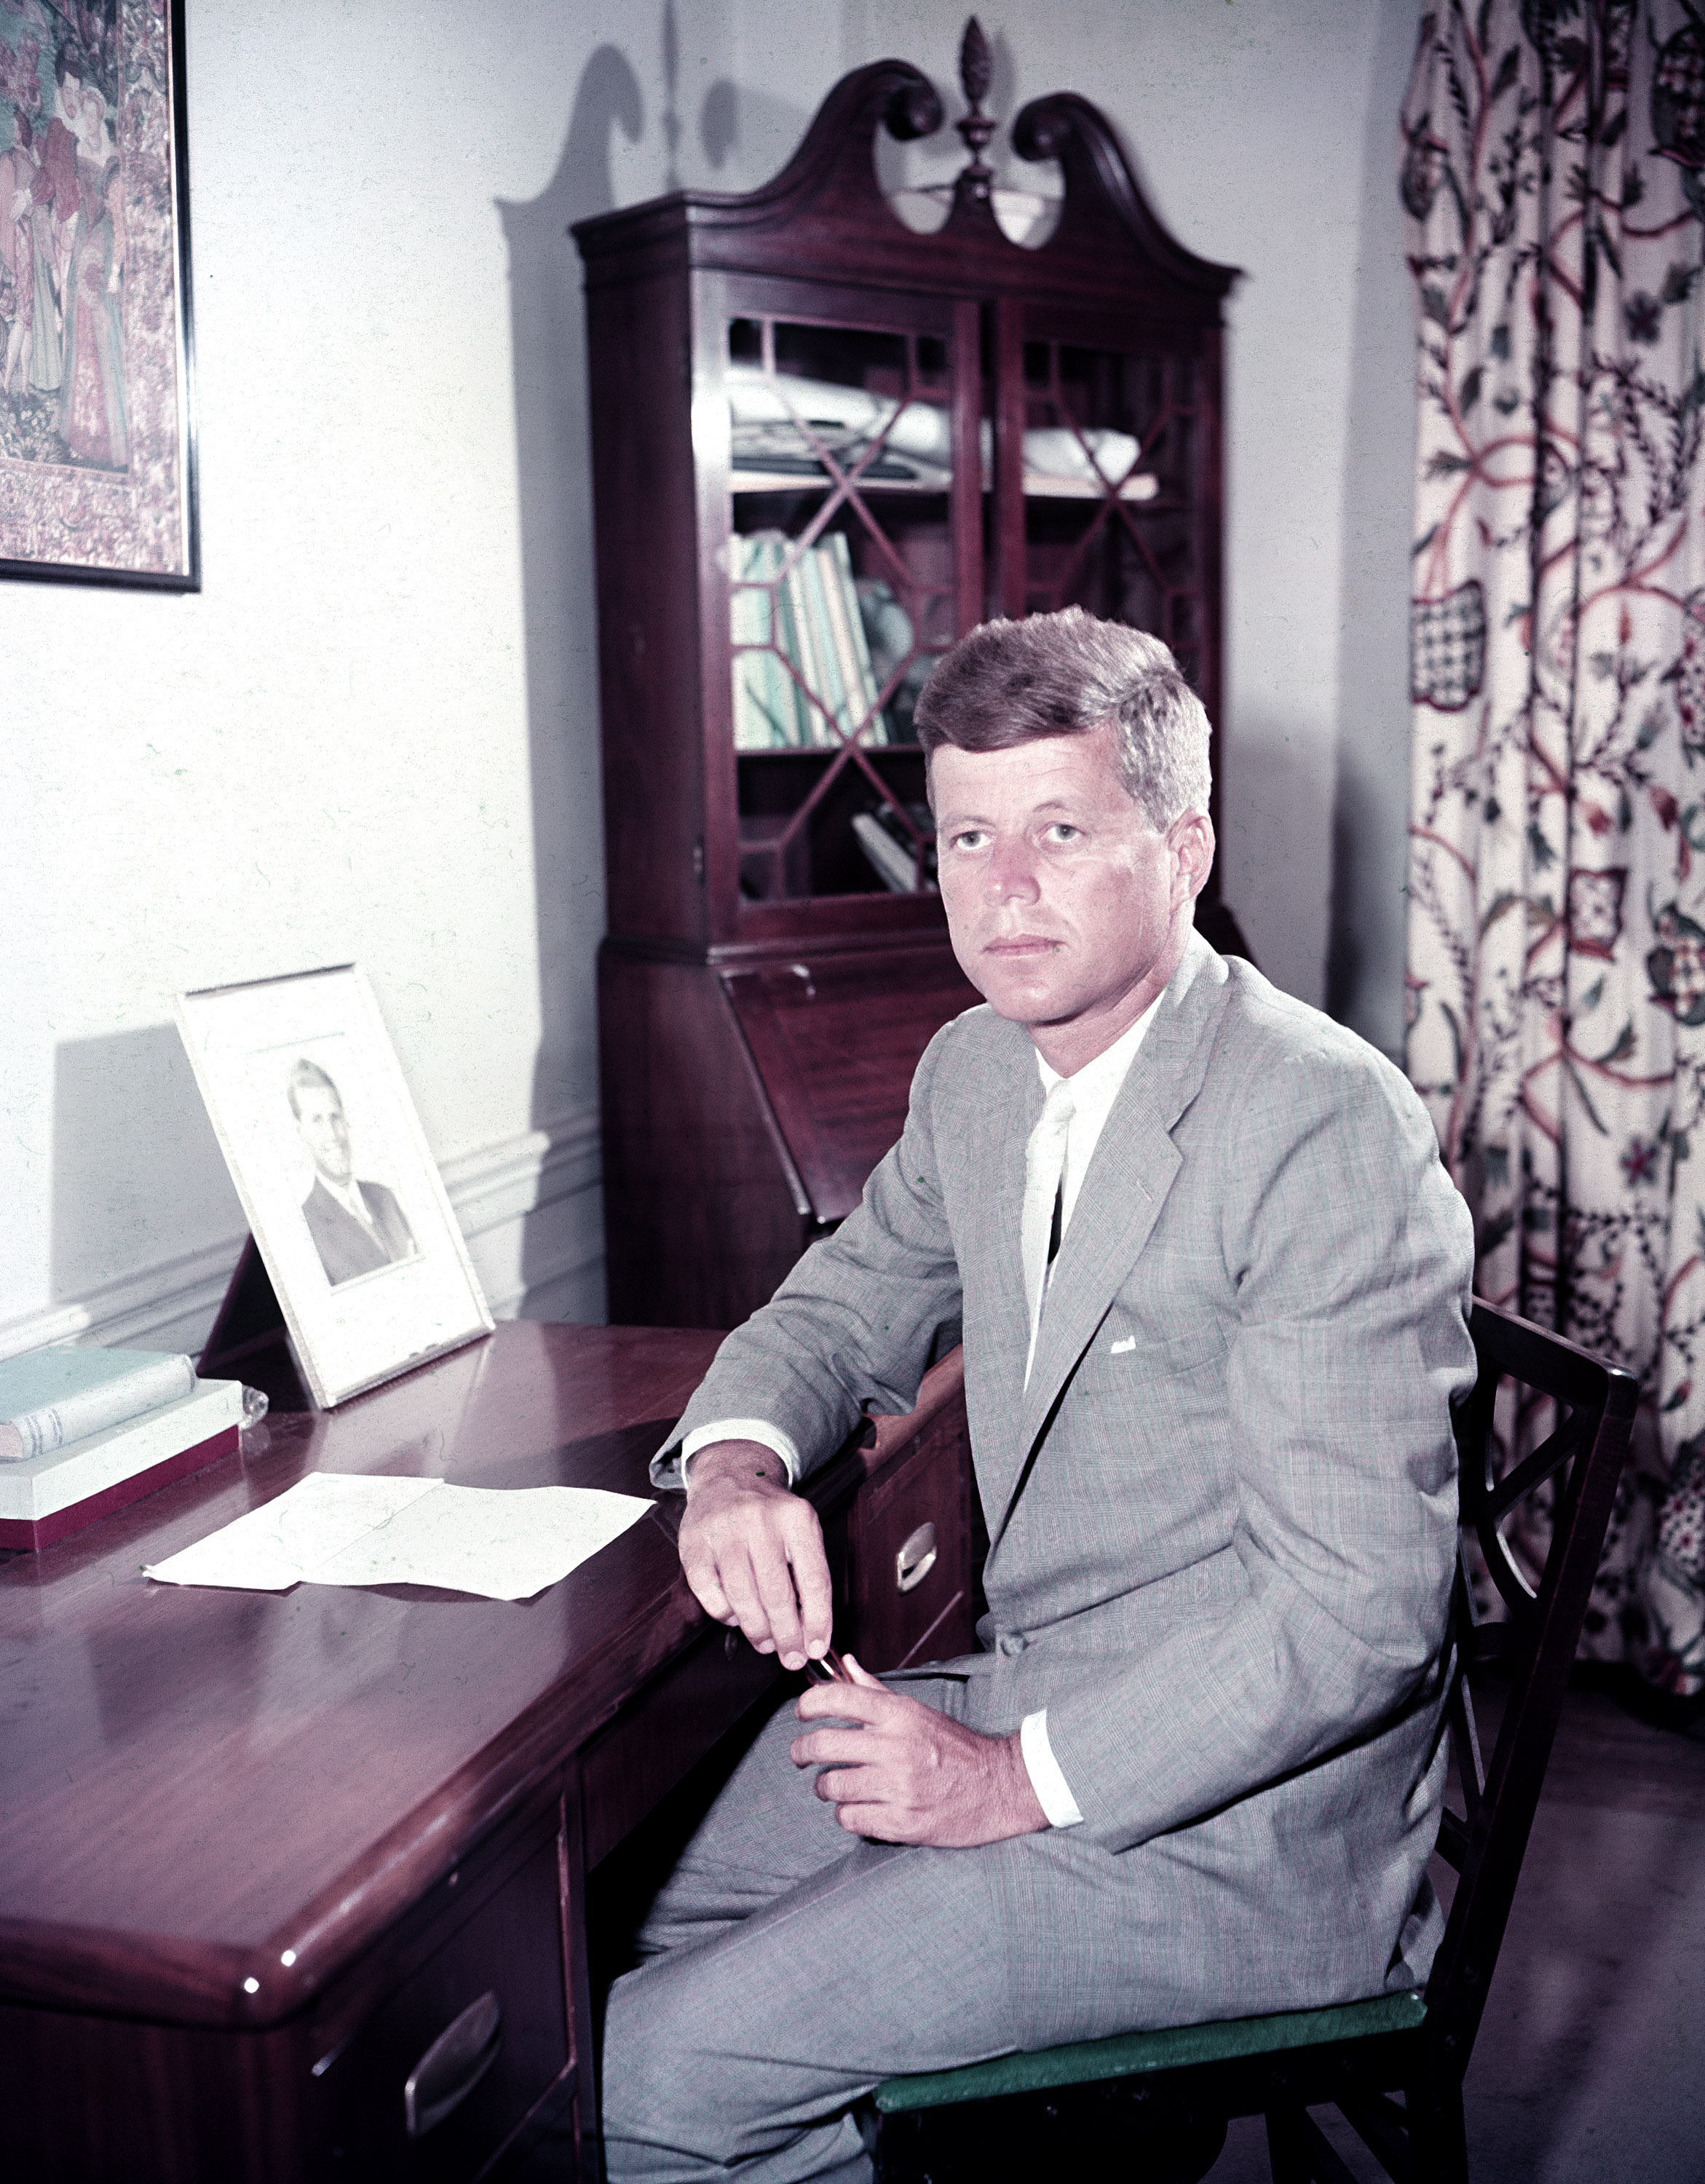 <div class='meta'><div class='origin-logo' data-origin='none'></div><span class='caption-text' data-credit='AP'>Senator John F. Kennedy (D-Mass.), seated at his desk in Boston, Mass., August 1956.</span></div>